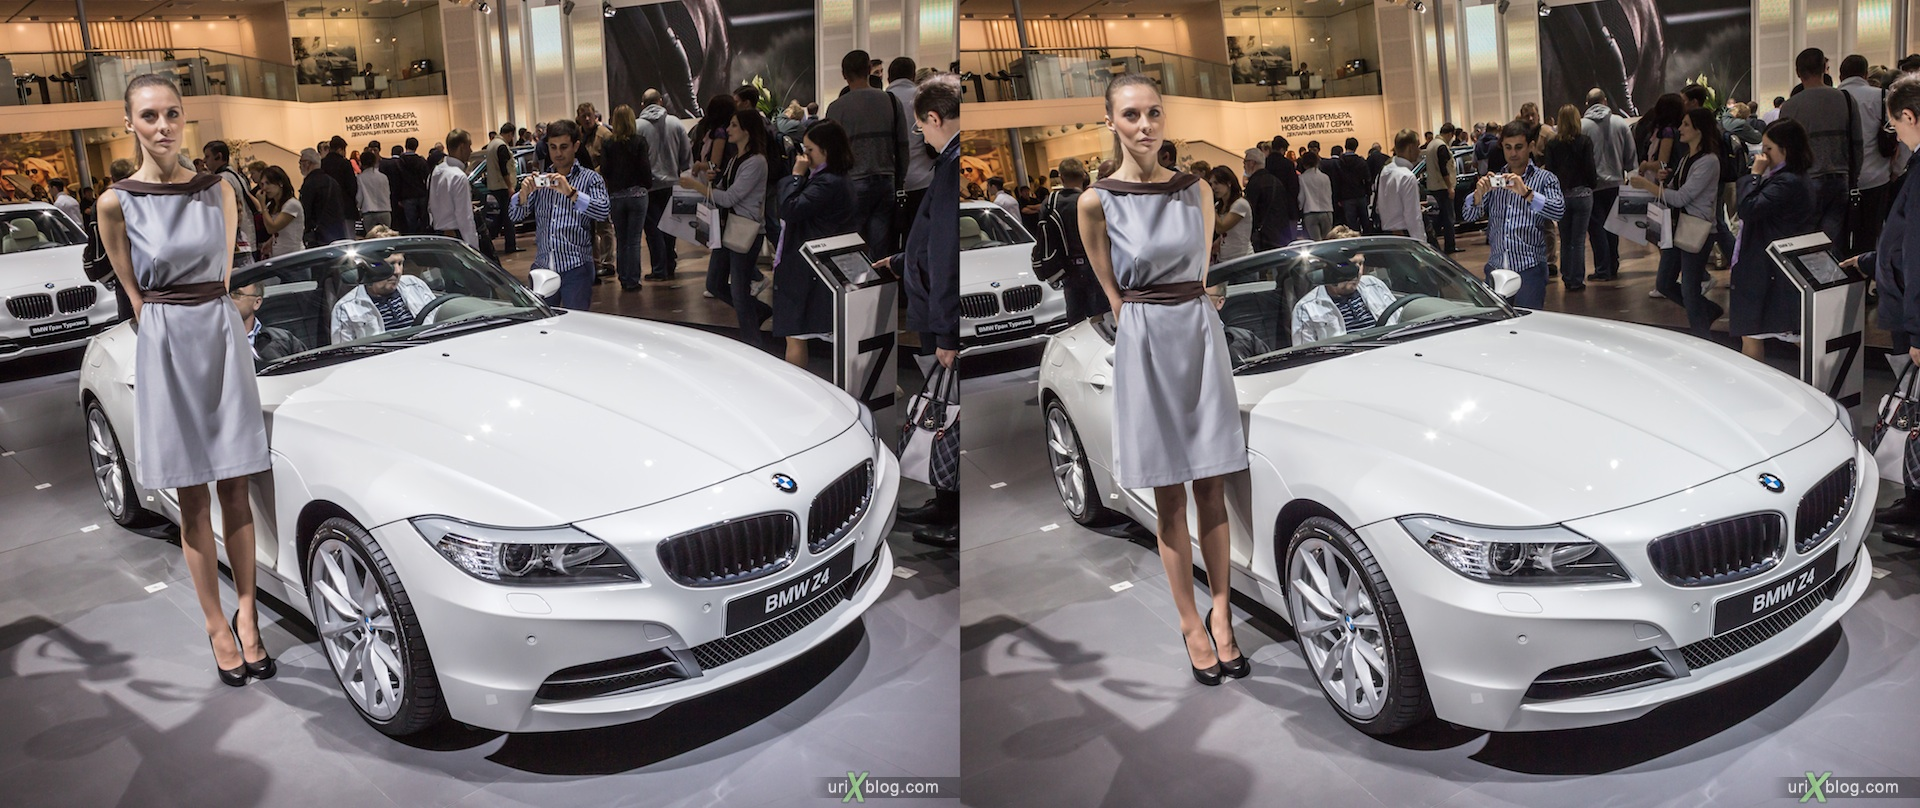 2012, BMW Z4, девушка, модель, girl, model, Moscow International Automobile Salon, auto show, 3D, stereo pair, cross-eyed, crossview